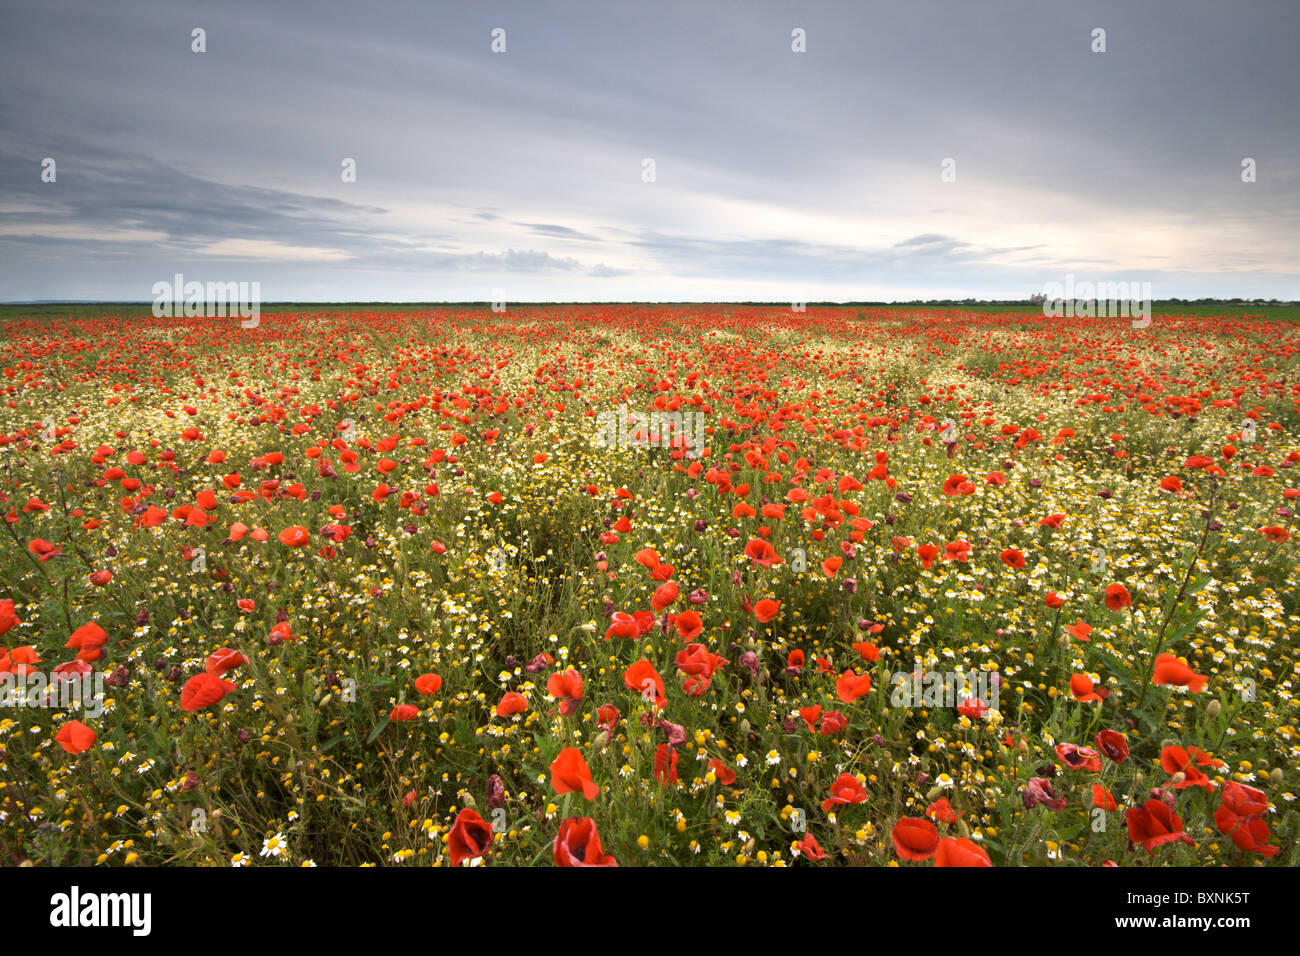 A vast field of vivid red poppies and other wild plants Stock Photo